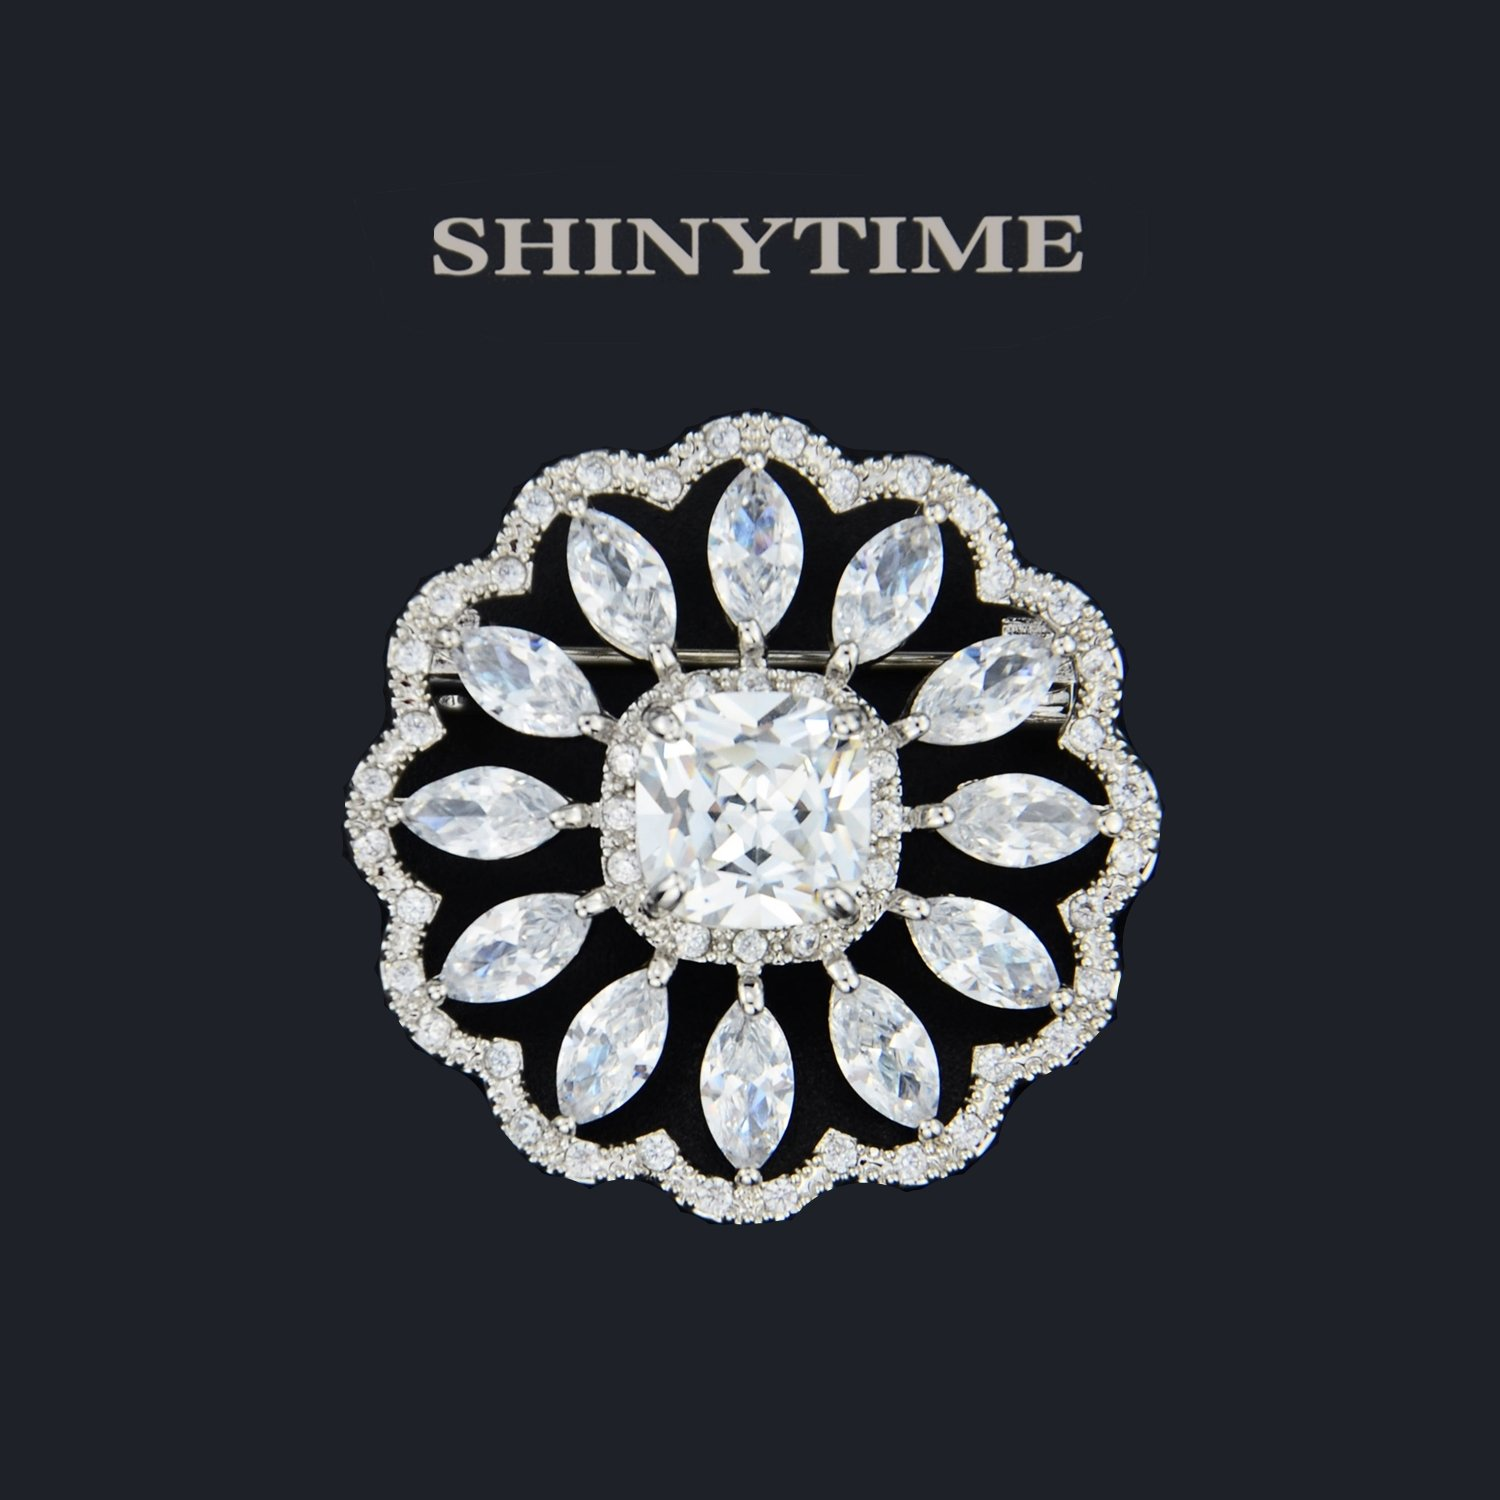 SHINYTIME Rhinestone Brooch Pin Crystal Fashion Clear Pins Women Wedding Brooches Silver Jewelry with Box by SHINYTIME (Image #2)